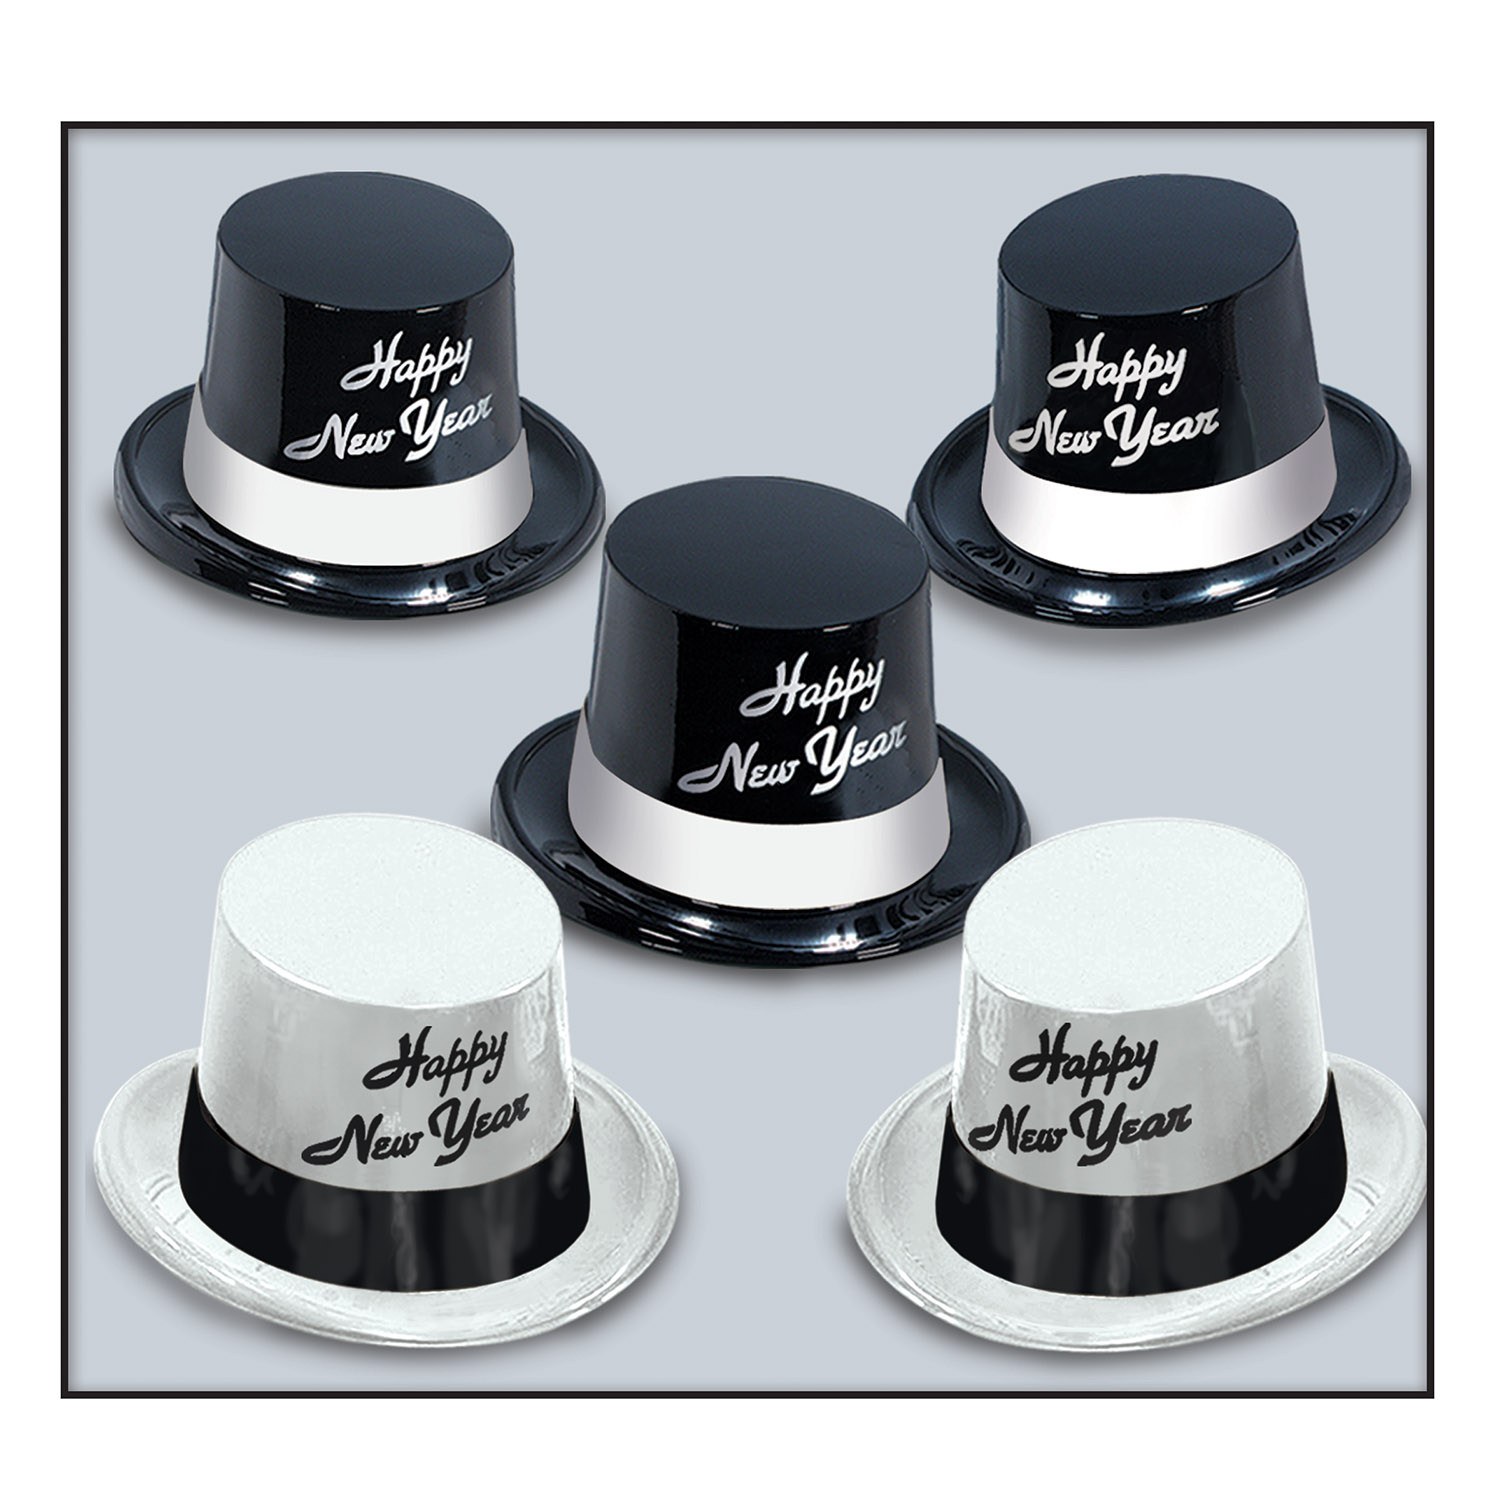 Black & White Legacy Toppers (Pack of 25) Black & White Legacy Toppers, Top Hats, Party Hats, Hats, New Year's Hats, New Year's Party Hats, New Year's Eve Hats, New Year's Eve Party Hats